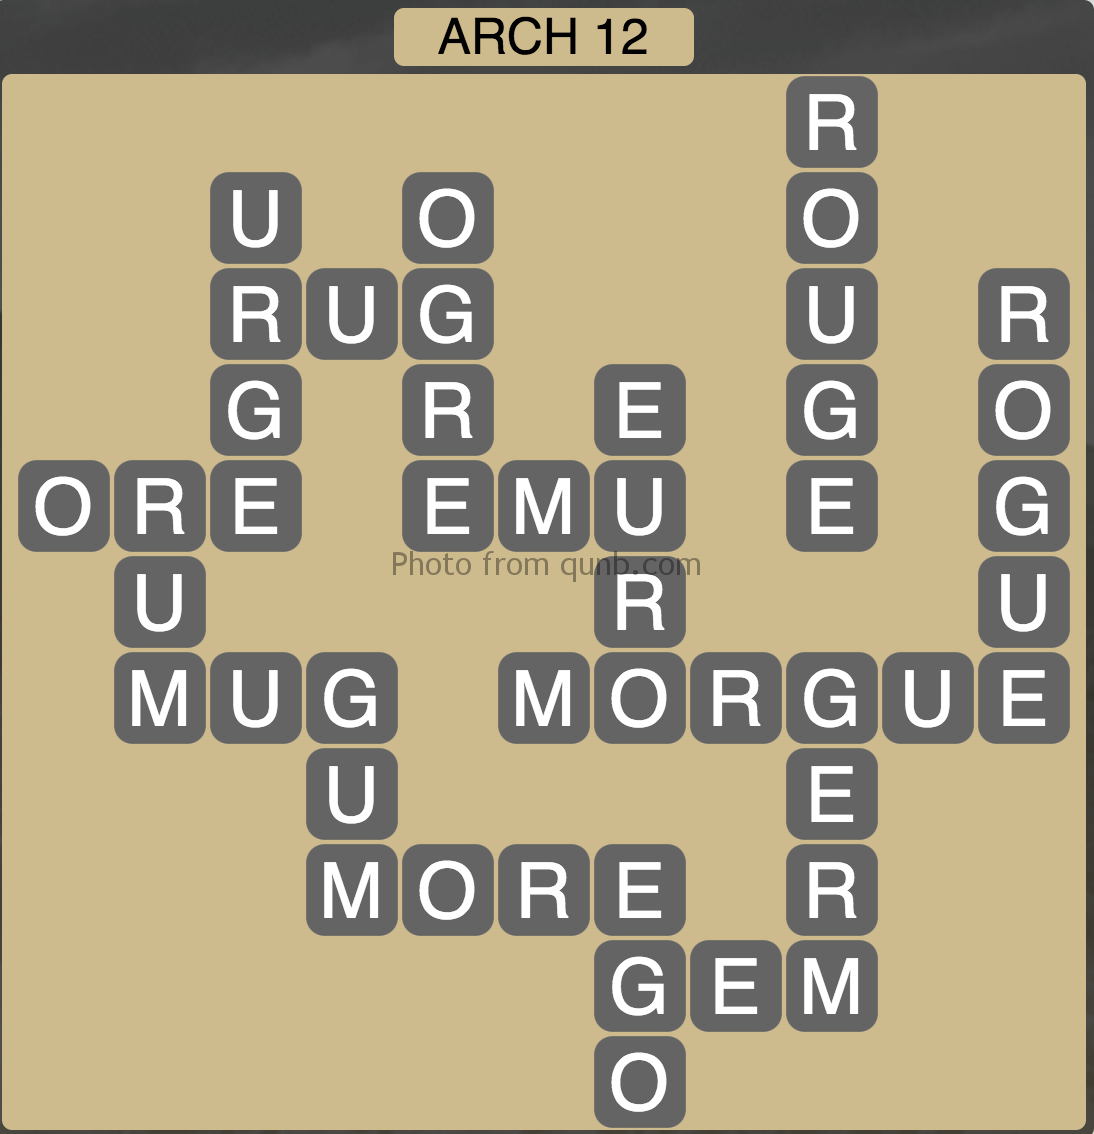 Wordscapes Level 124 Canyon Arch 12 Answer Qunb